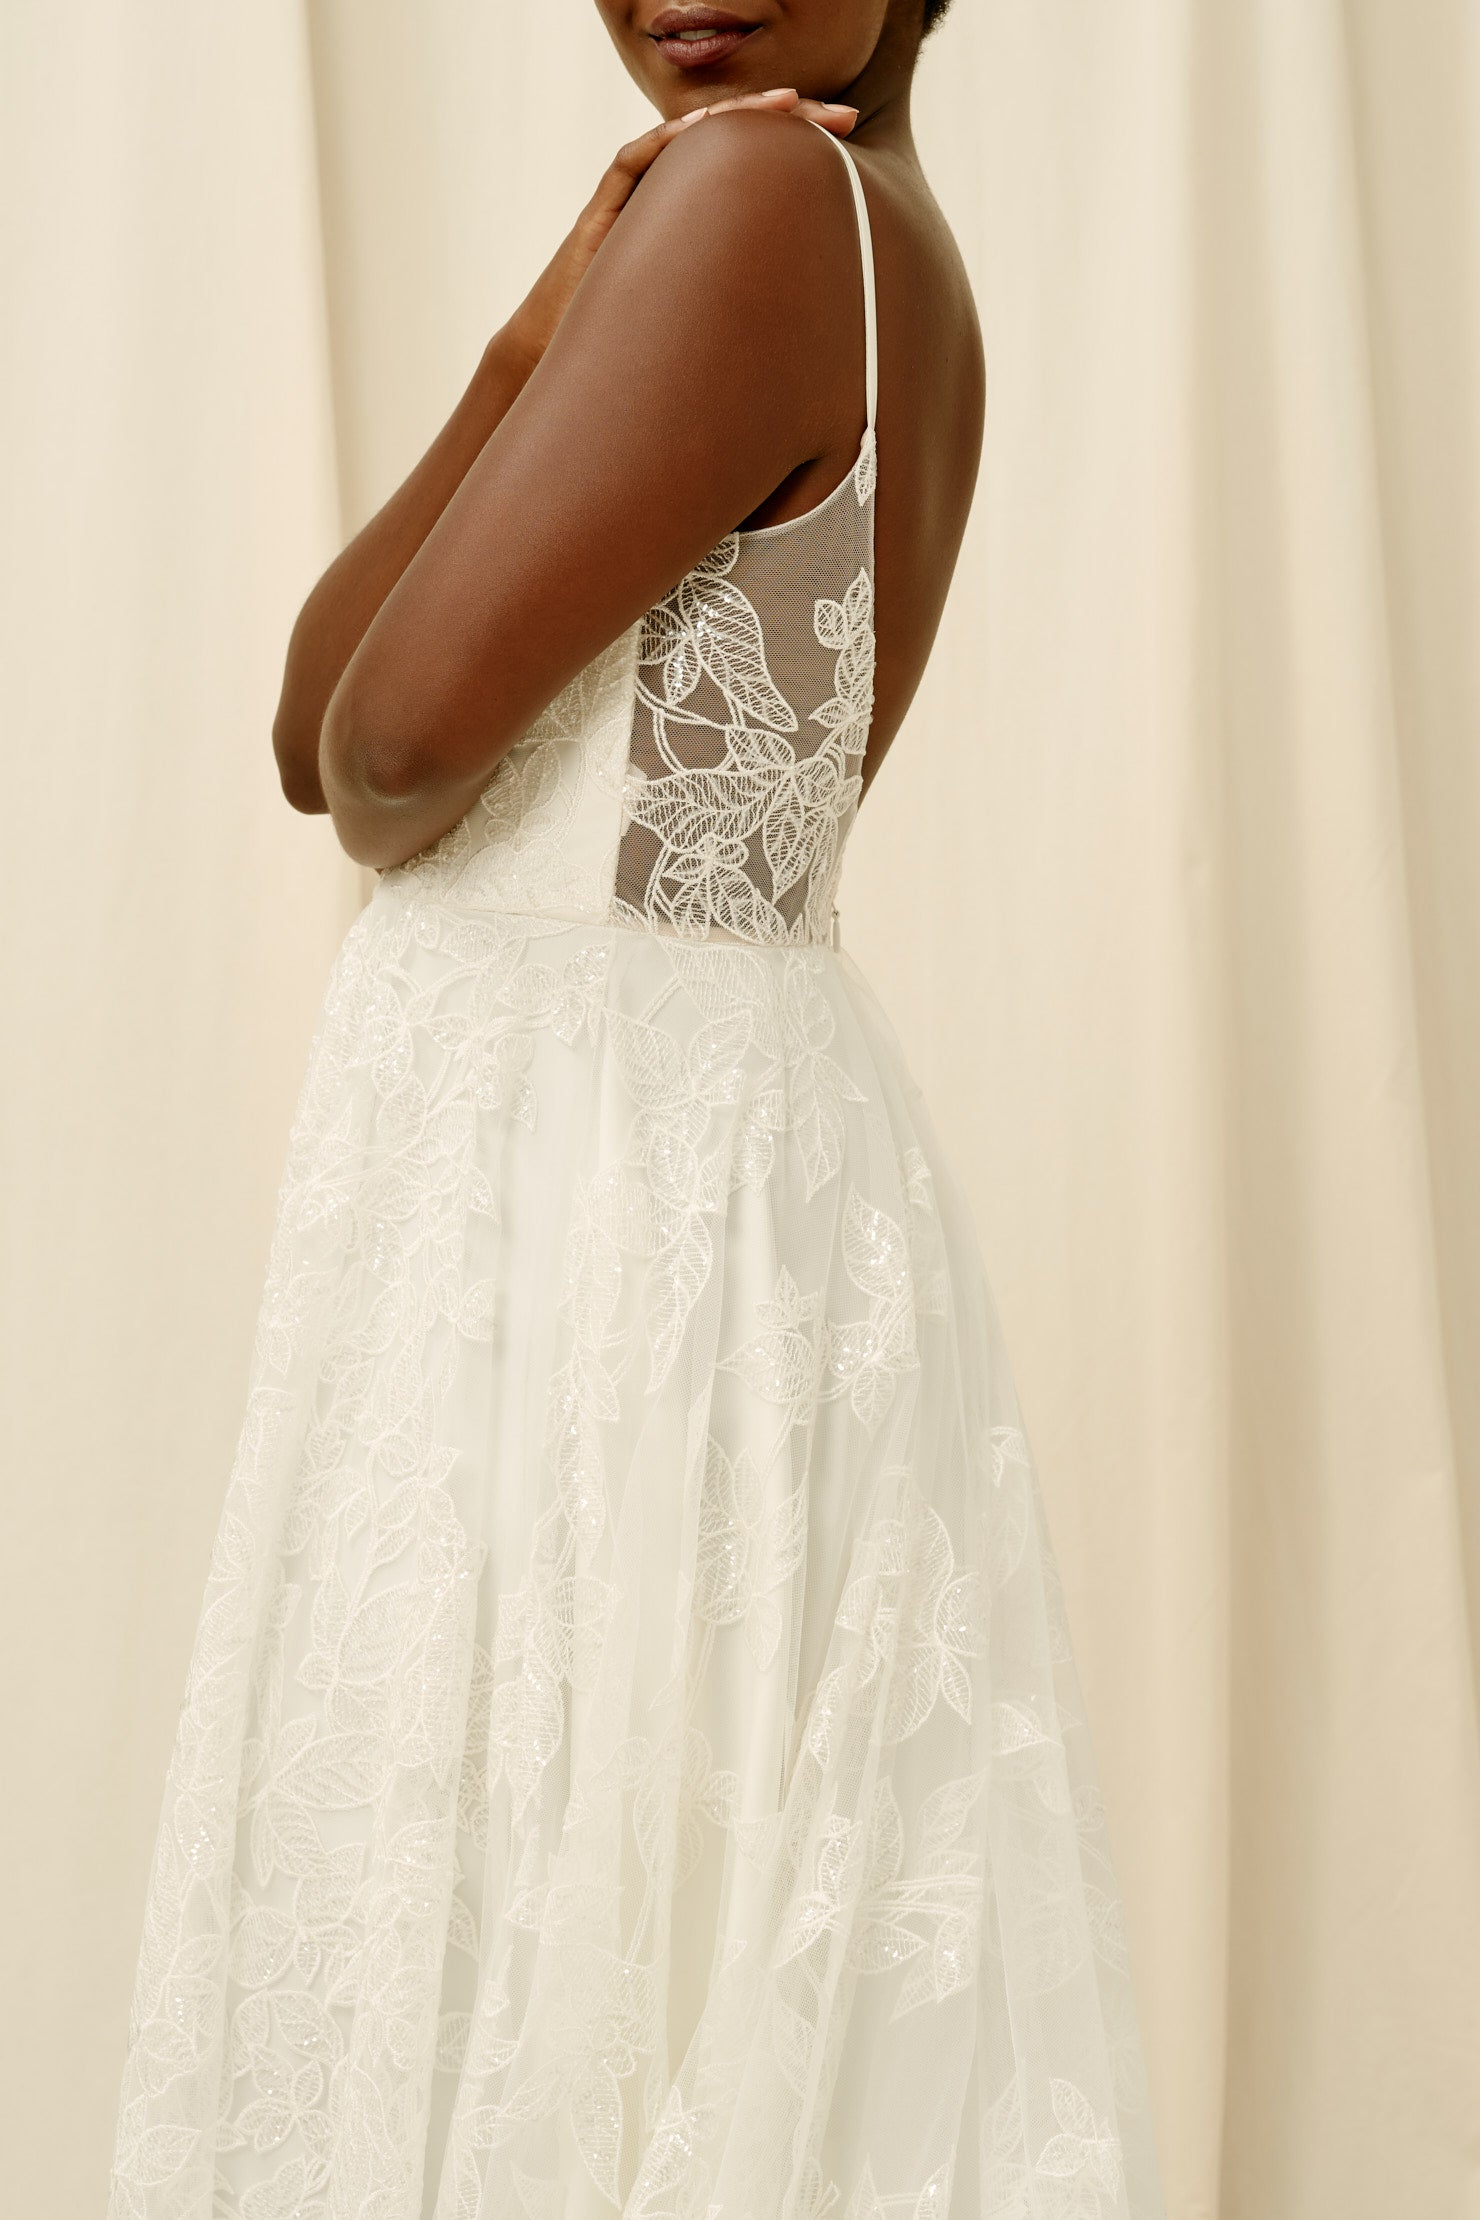 Wedding dress boutique in Calgary AB